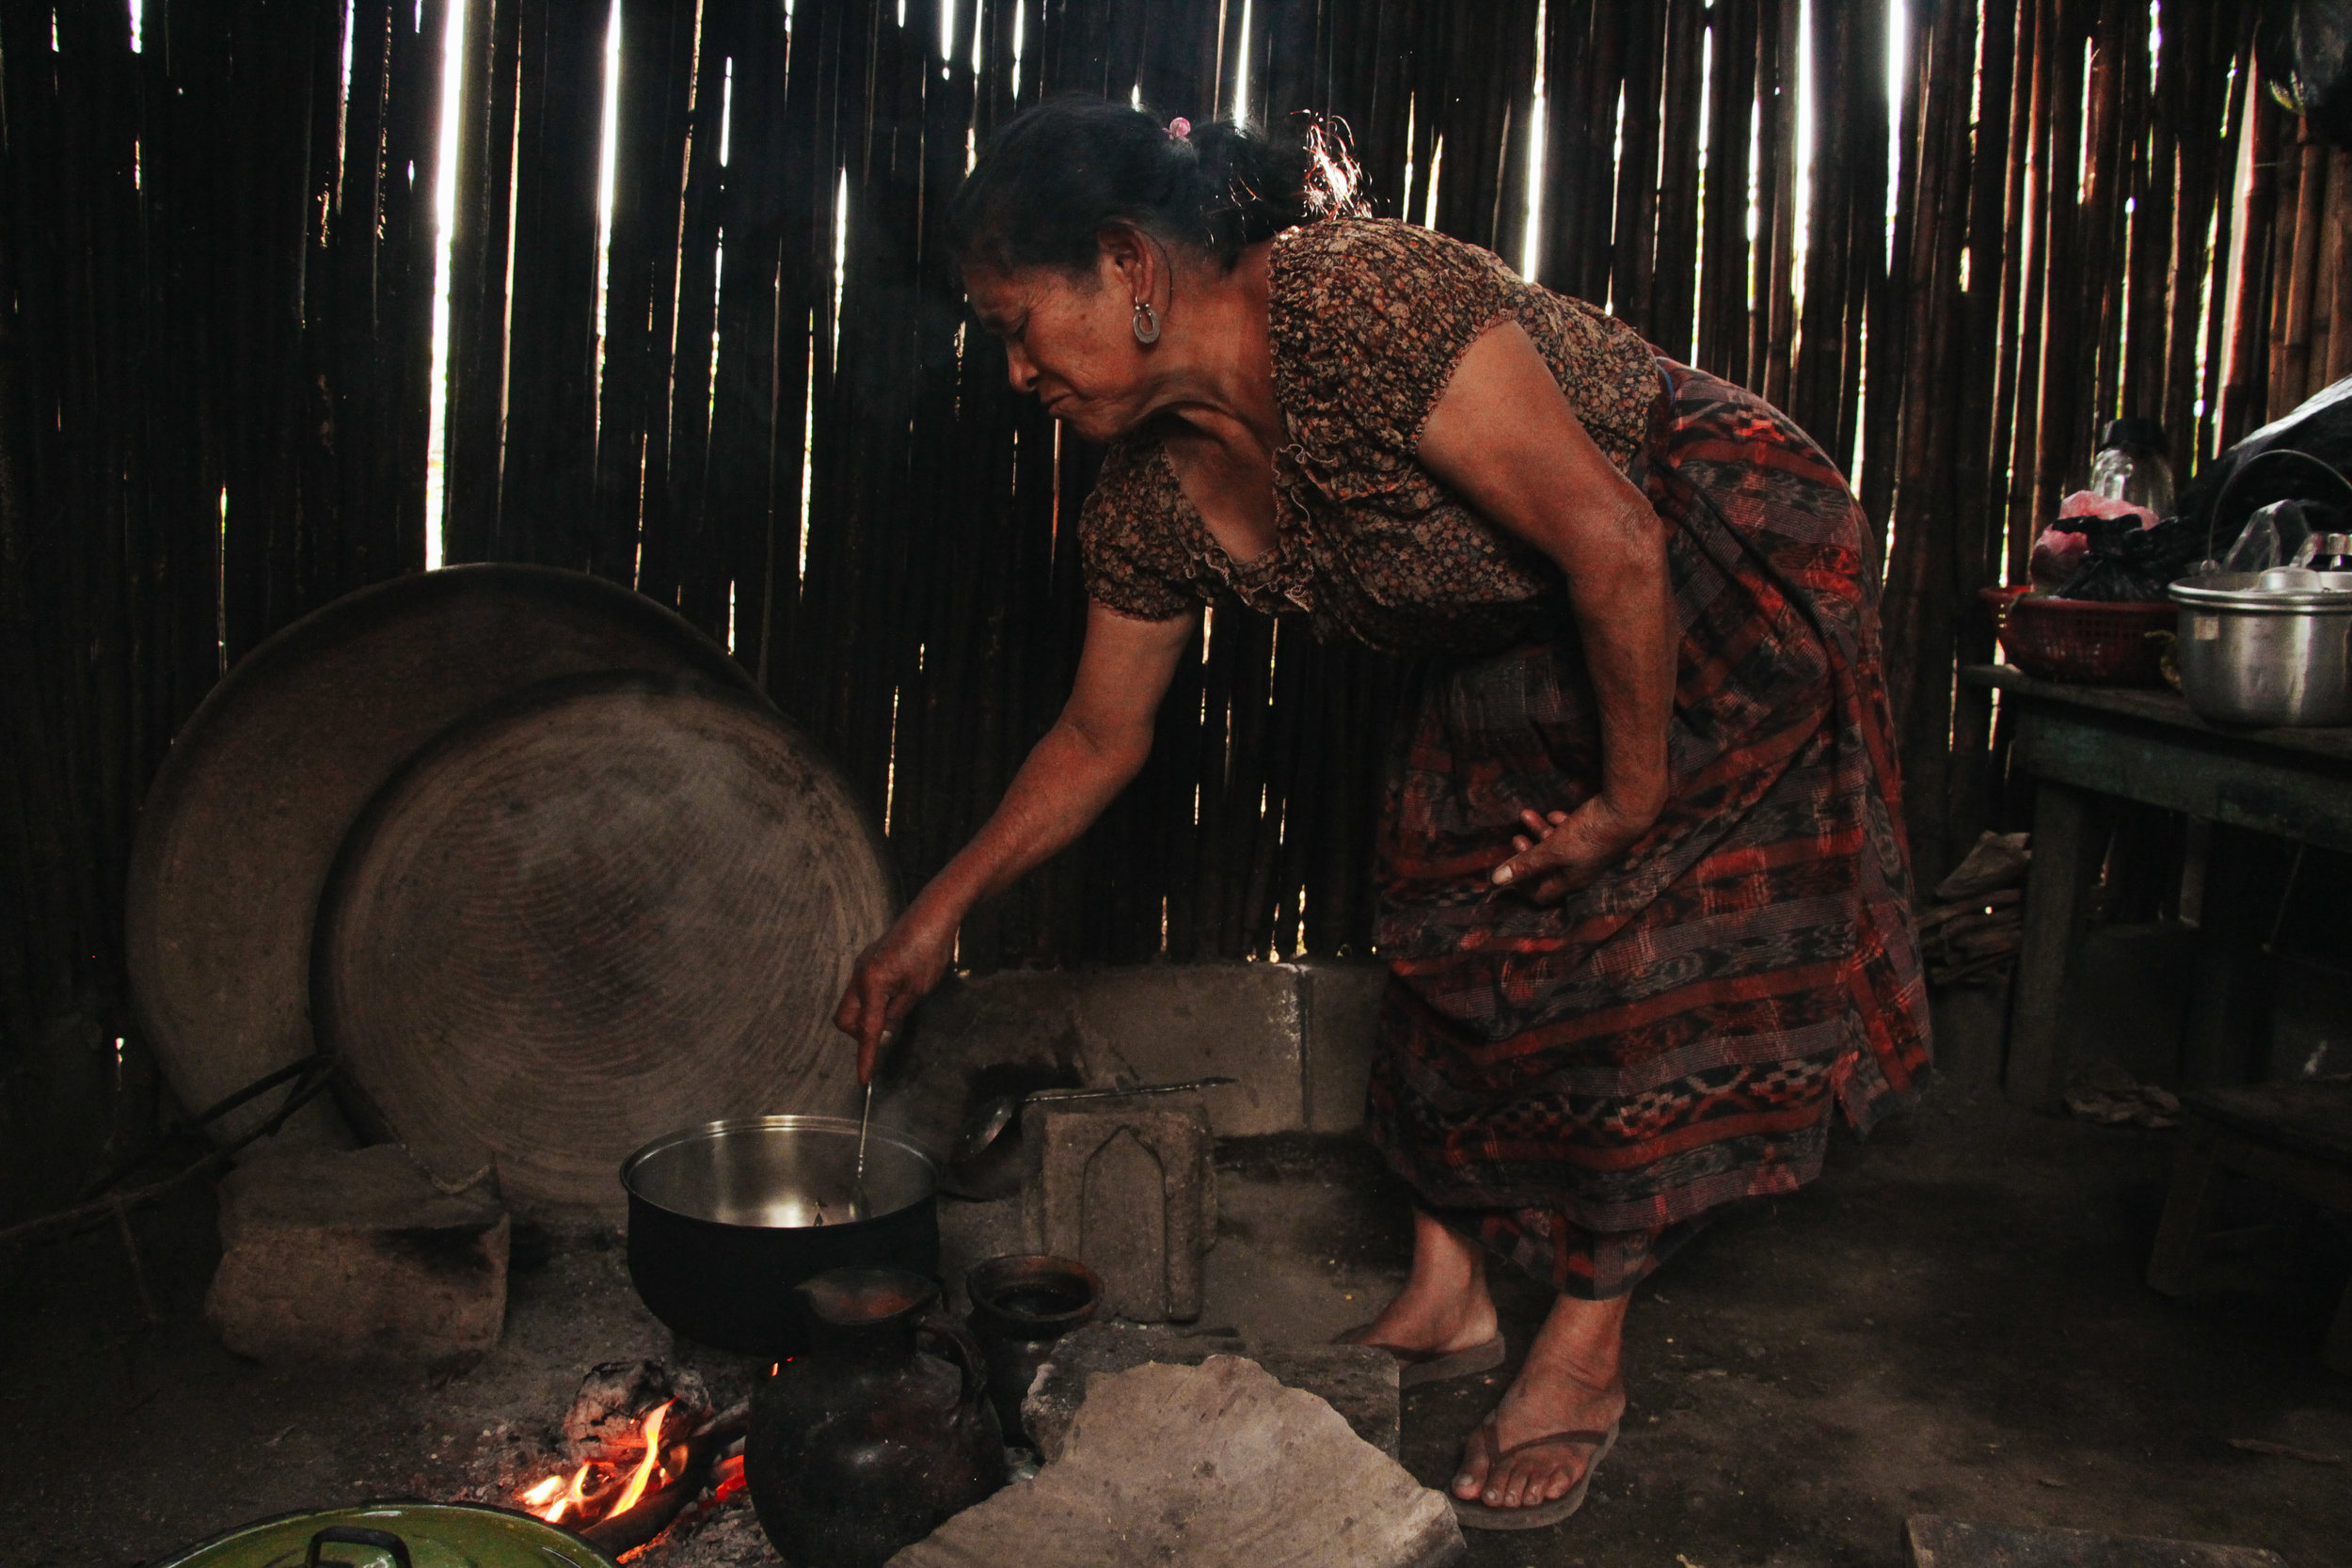 MARIA TRINIDAD SANTOS STIRS HER FOOD OVER THE FIRE IN HER HOME. SANTOS SOLD FOOD IN THE VILLAGE UNTIL 10 P.M.